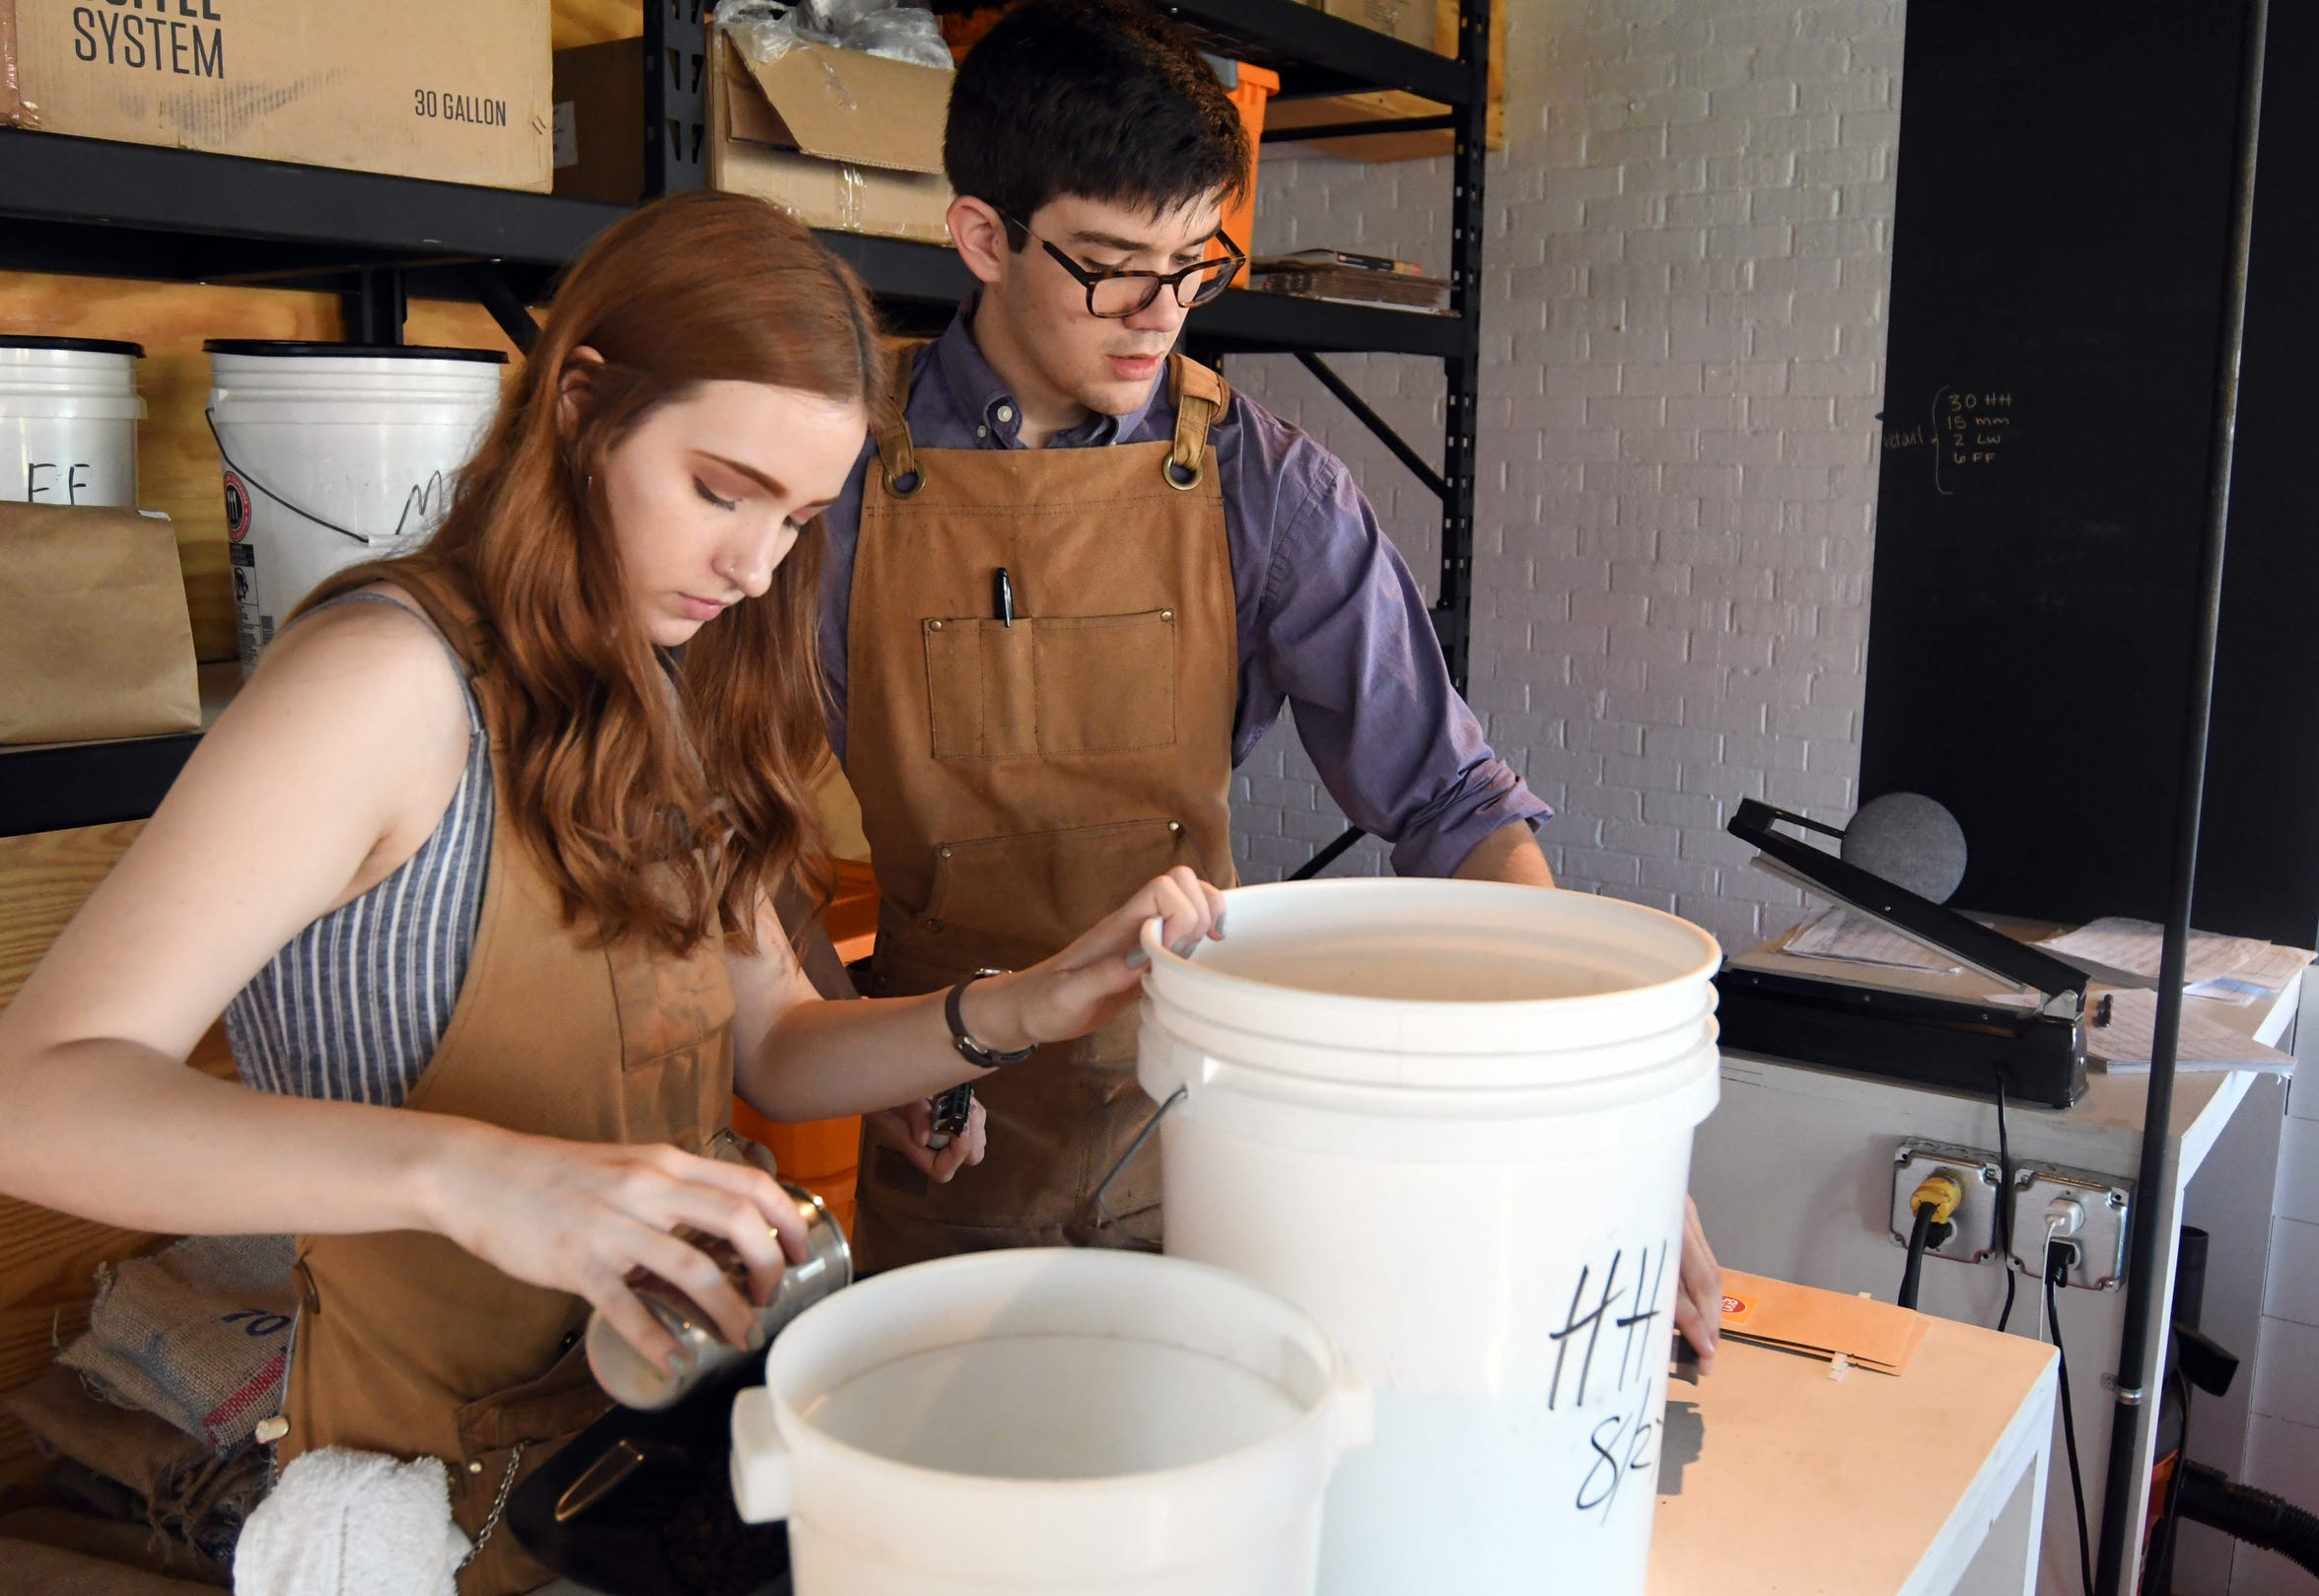 Employees Mikayla Hollingsworth and Micah Graves pour coffee beans into individual bags at Grin Coffee in Hattiesburg.